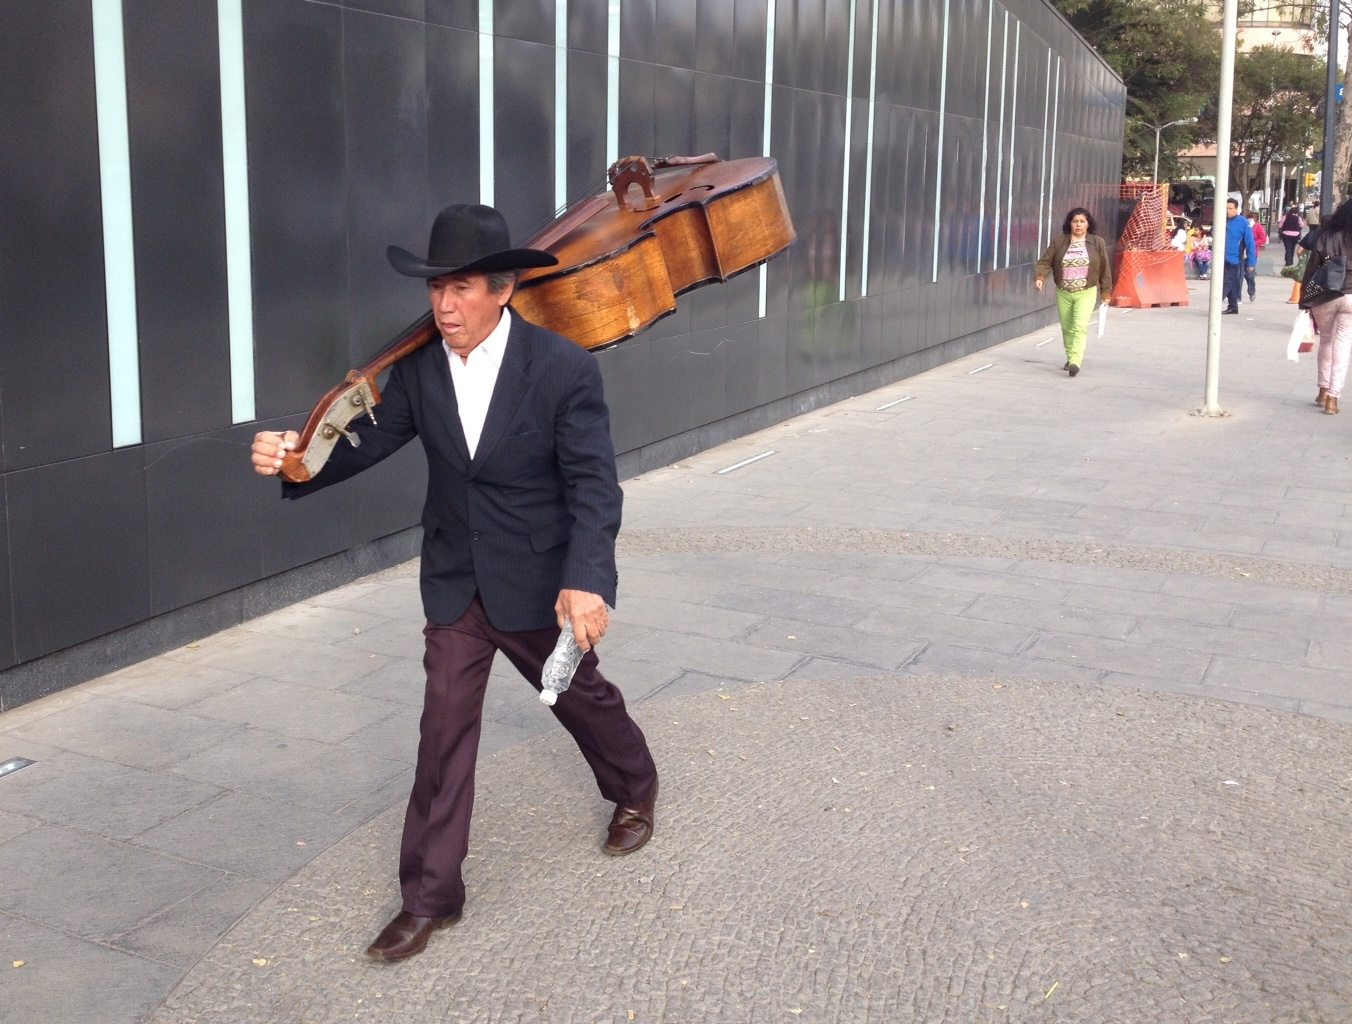 Musician walking to Revolution Subway station in Mexico City.